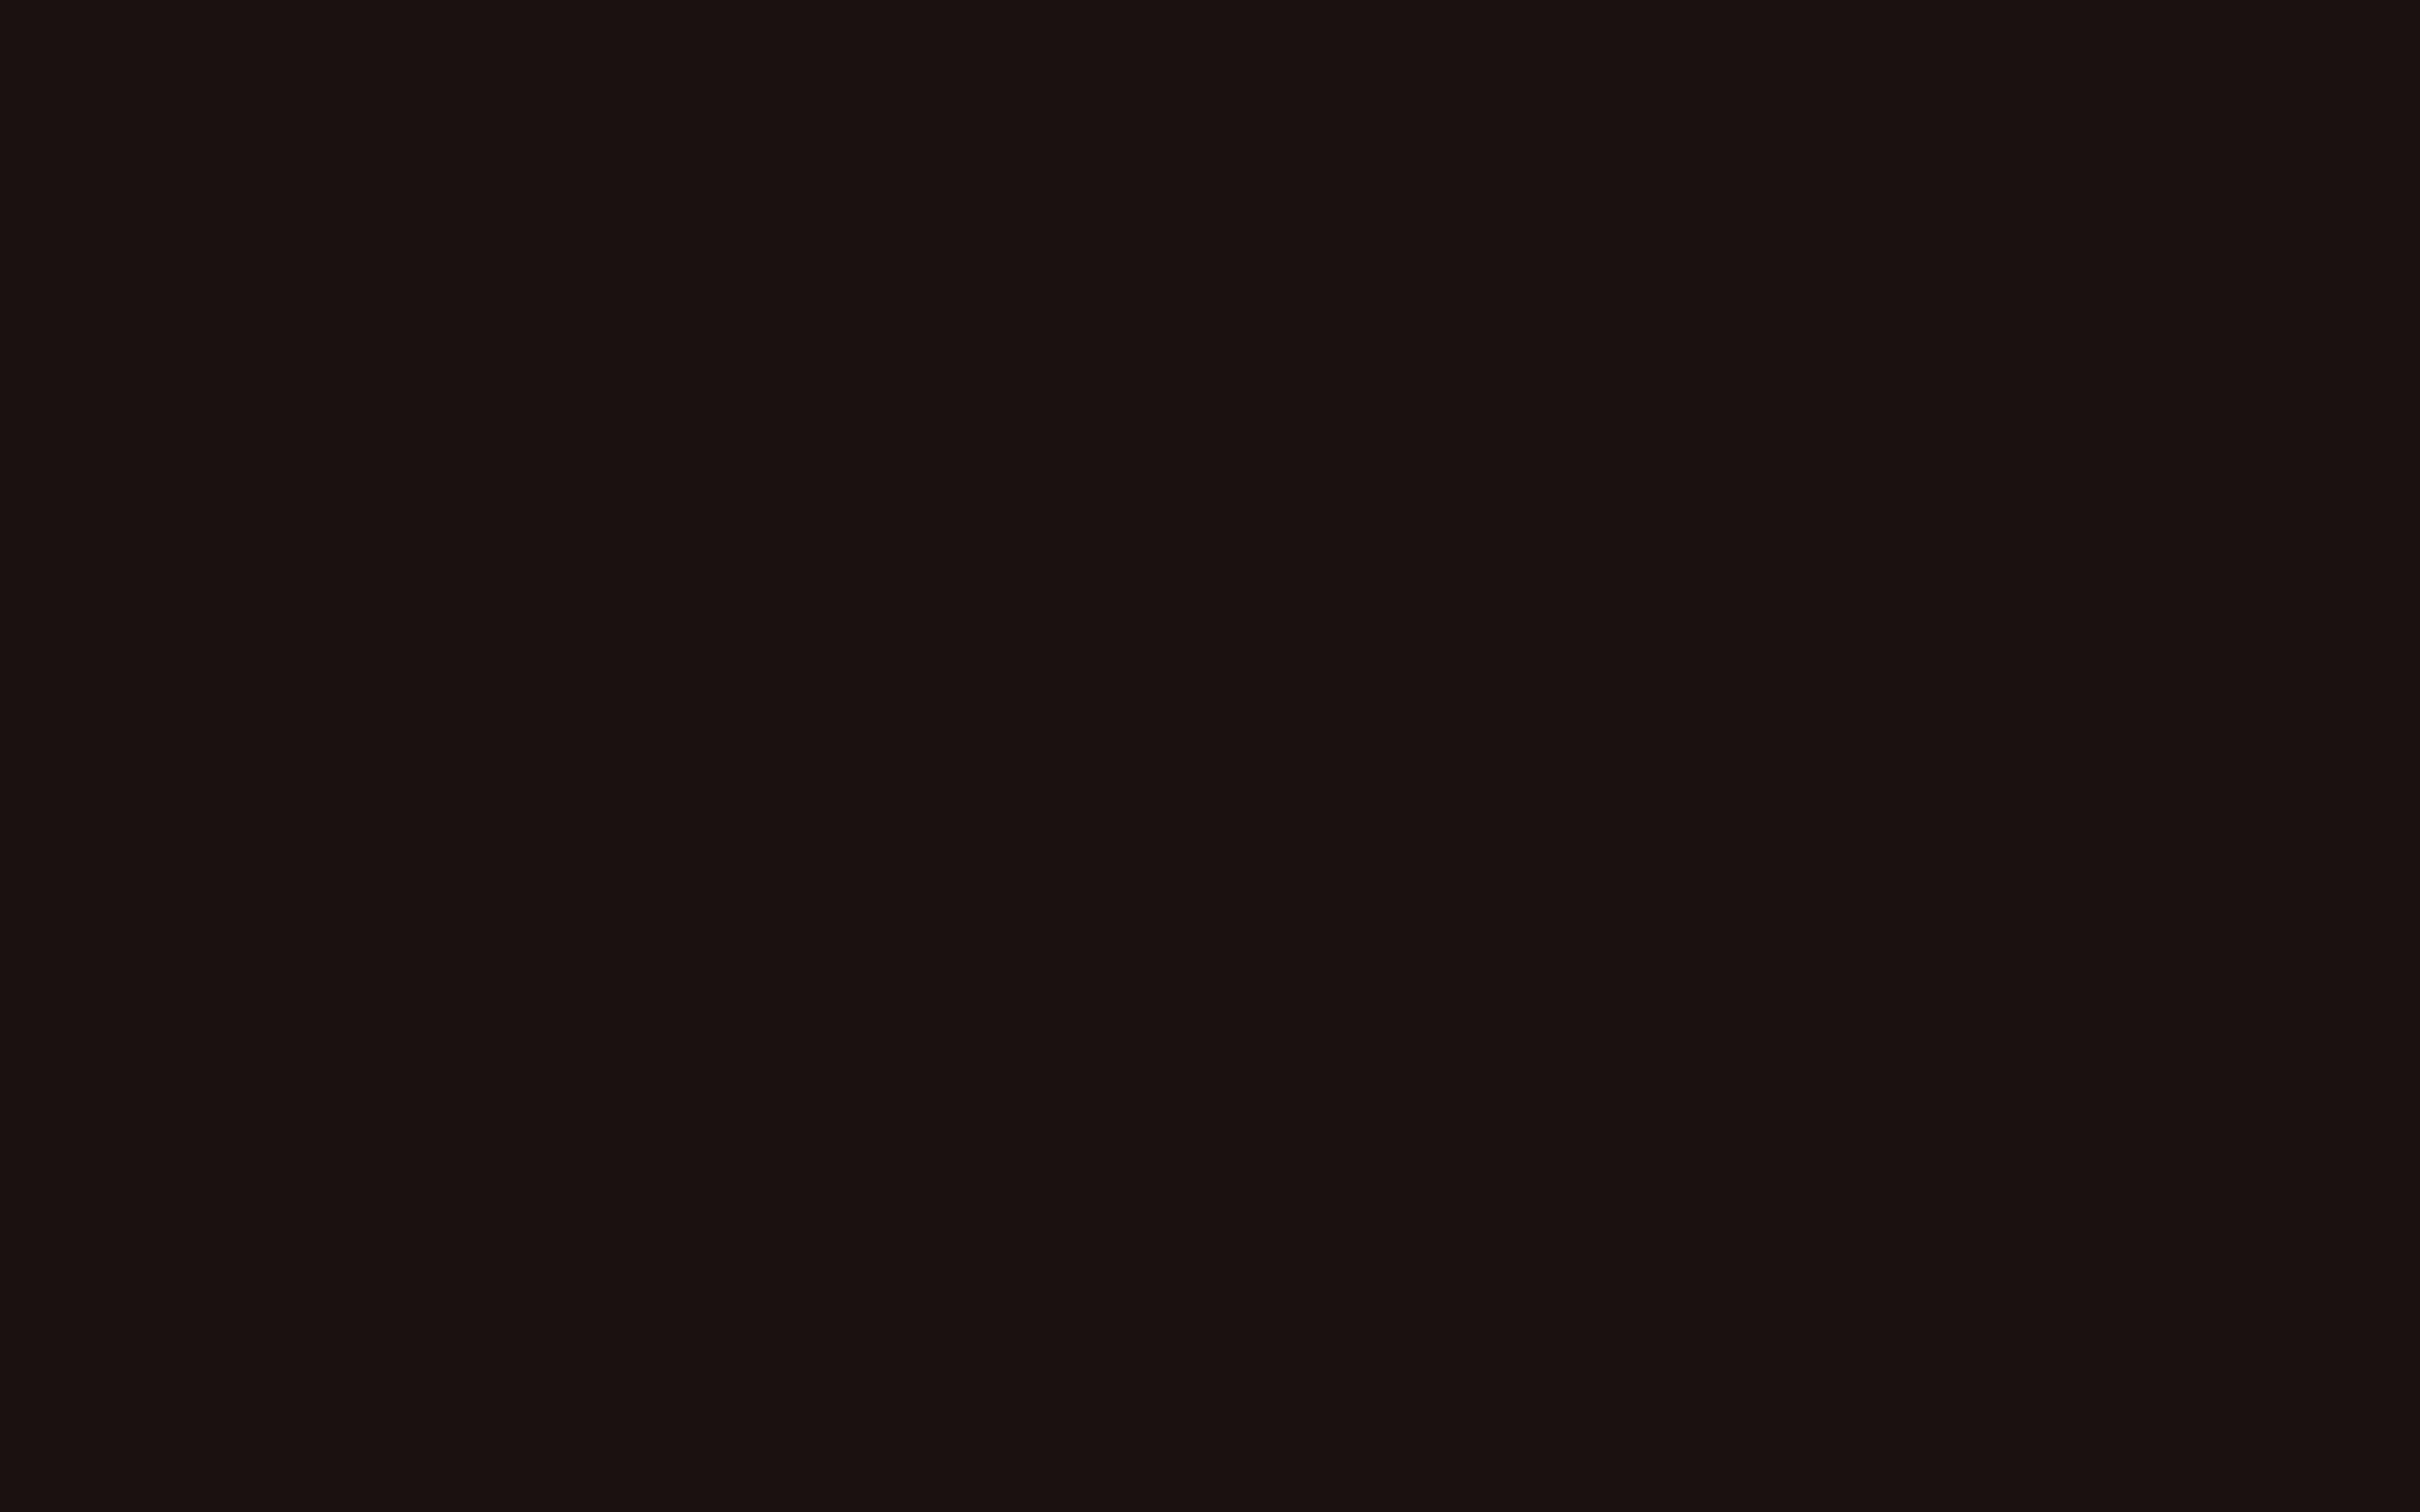 2880x1800 Licorice Solid Color Background